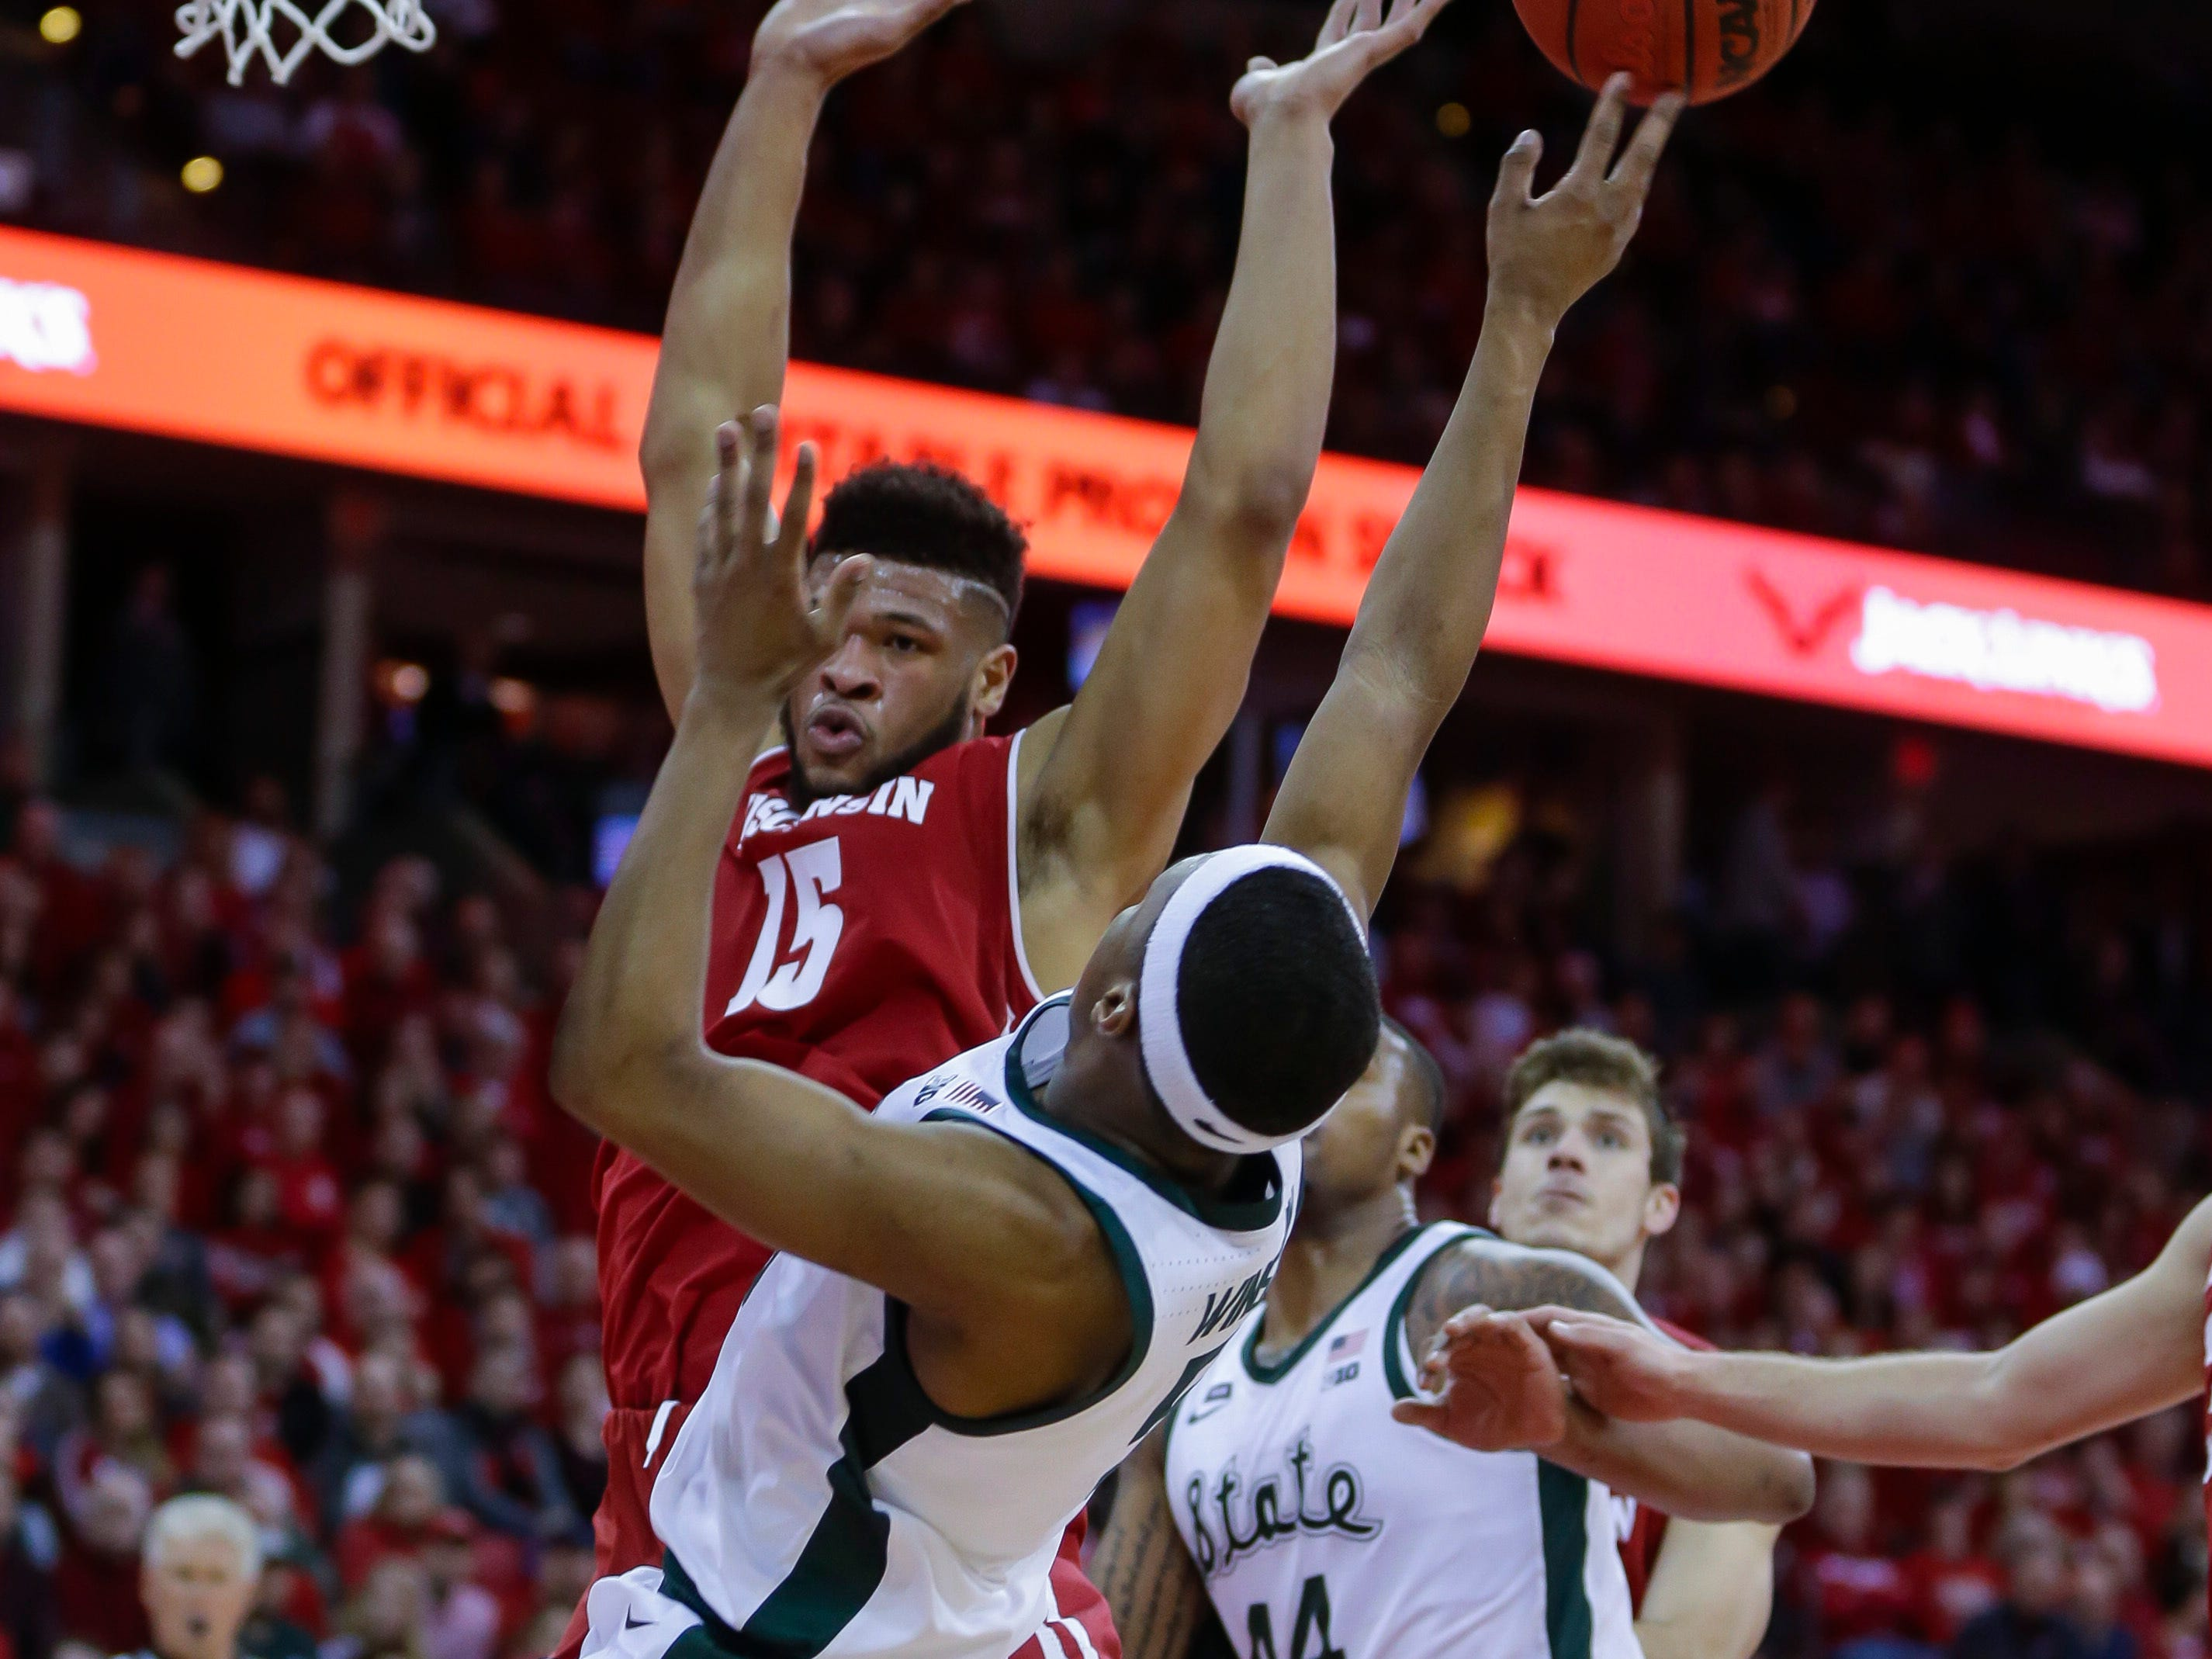 Michigan States's Kyle Ahrens (0) shoots as Wisconsin's Charles Thomas (15) defends during the first half of an NCAA college basketball game Tuesday, Feb. 12, 2019, in Madison, Wis.